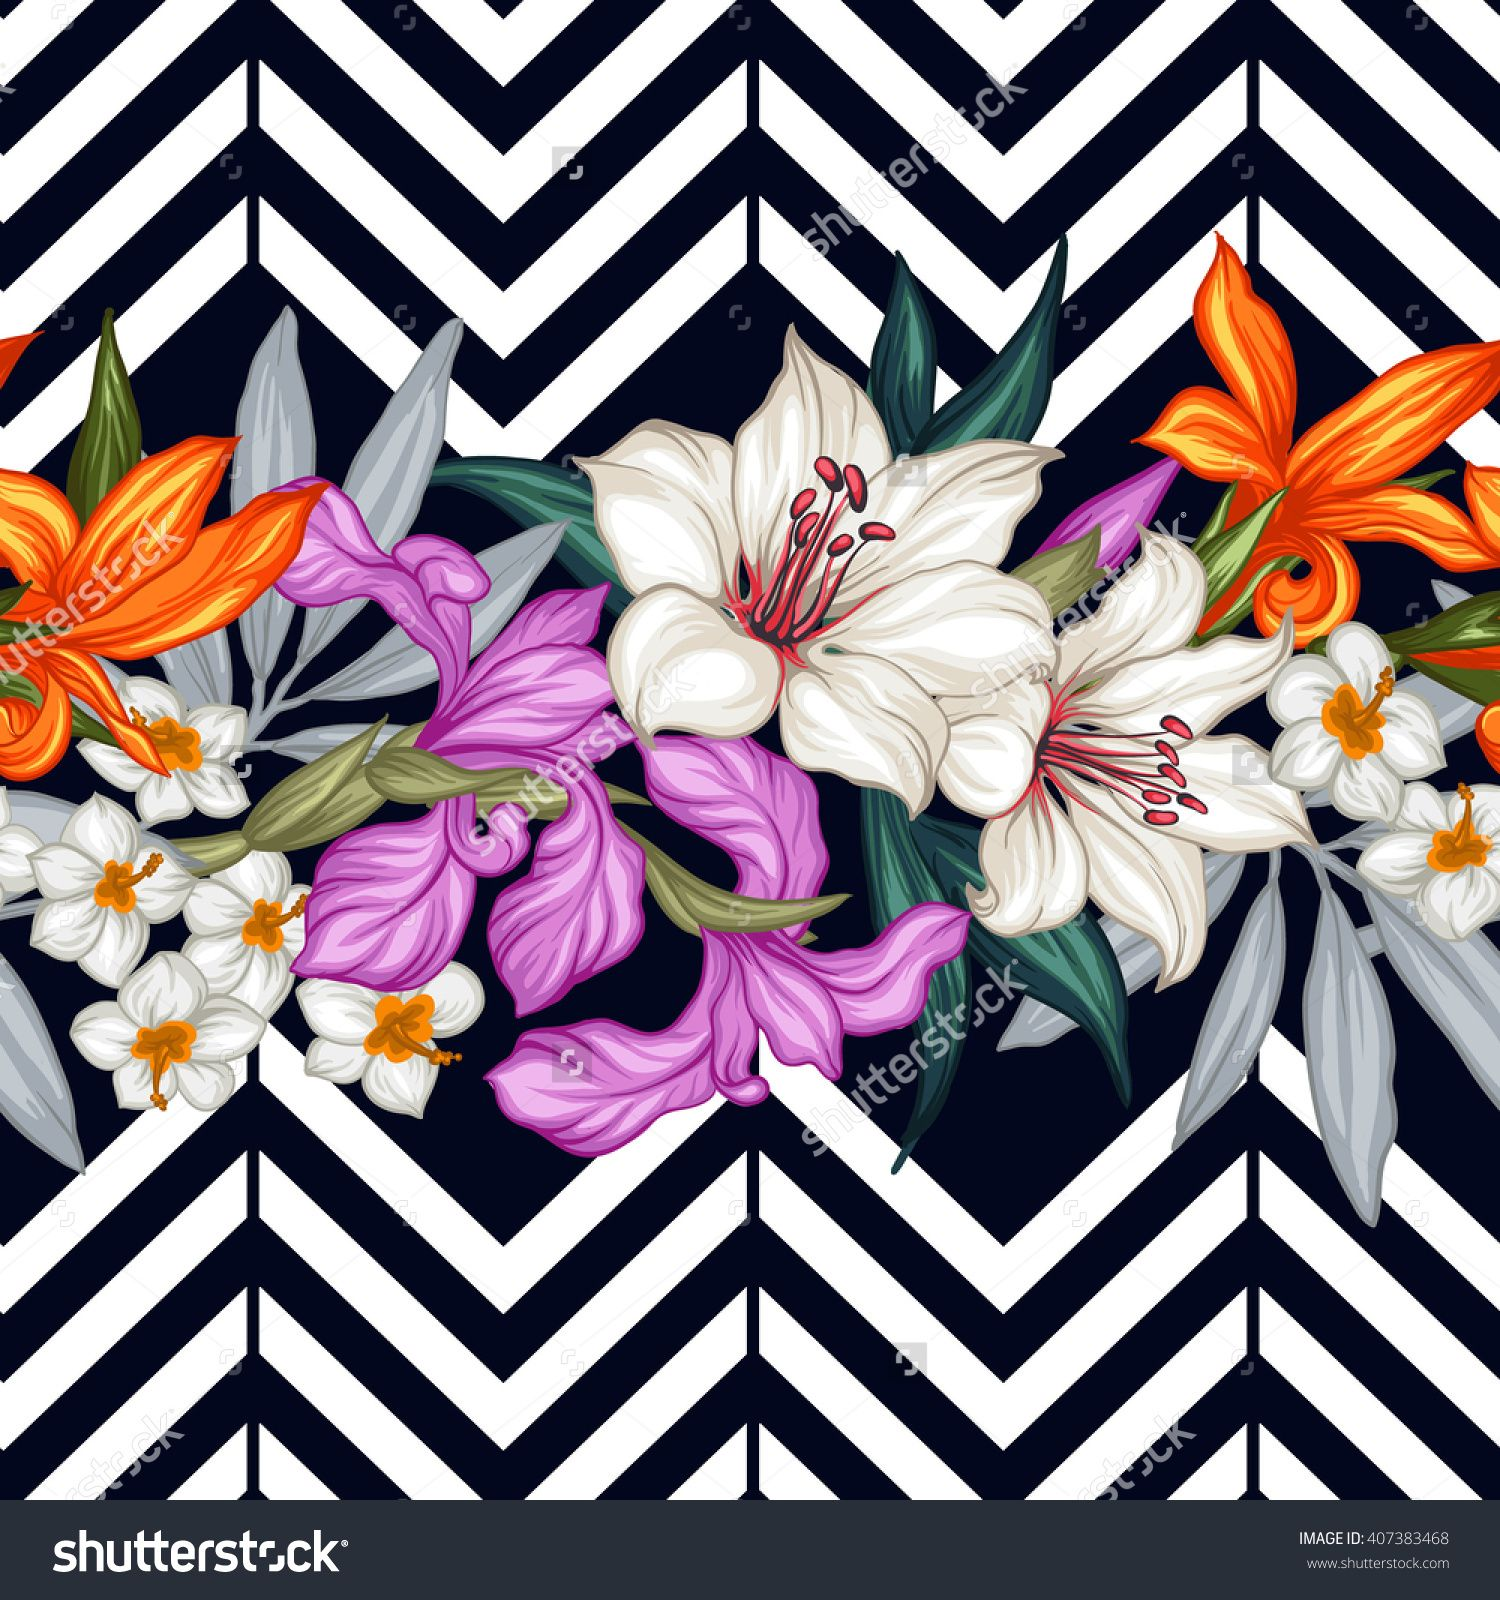 Black and white vintage wallpaper designs white and black wallpaper - Vector Tropical Leaves And Flowers Seamless Pattern Hand